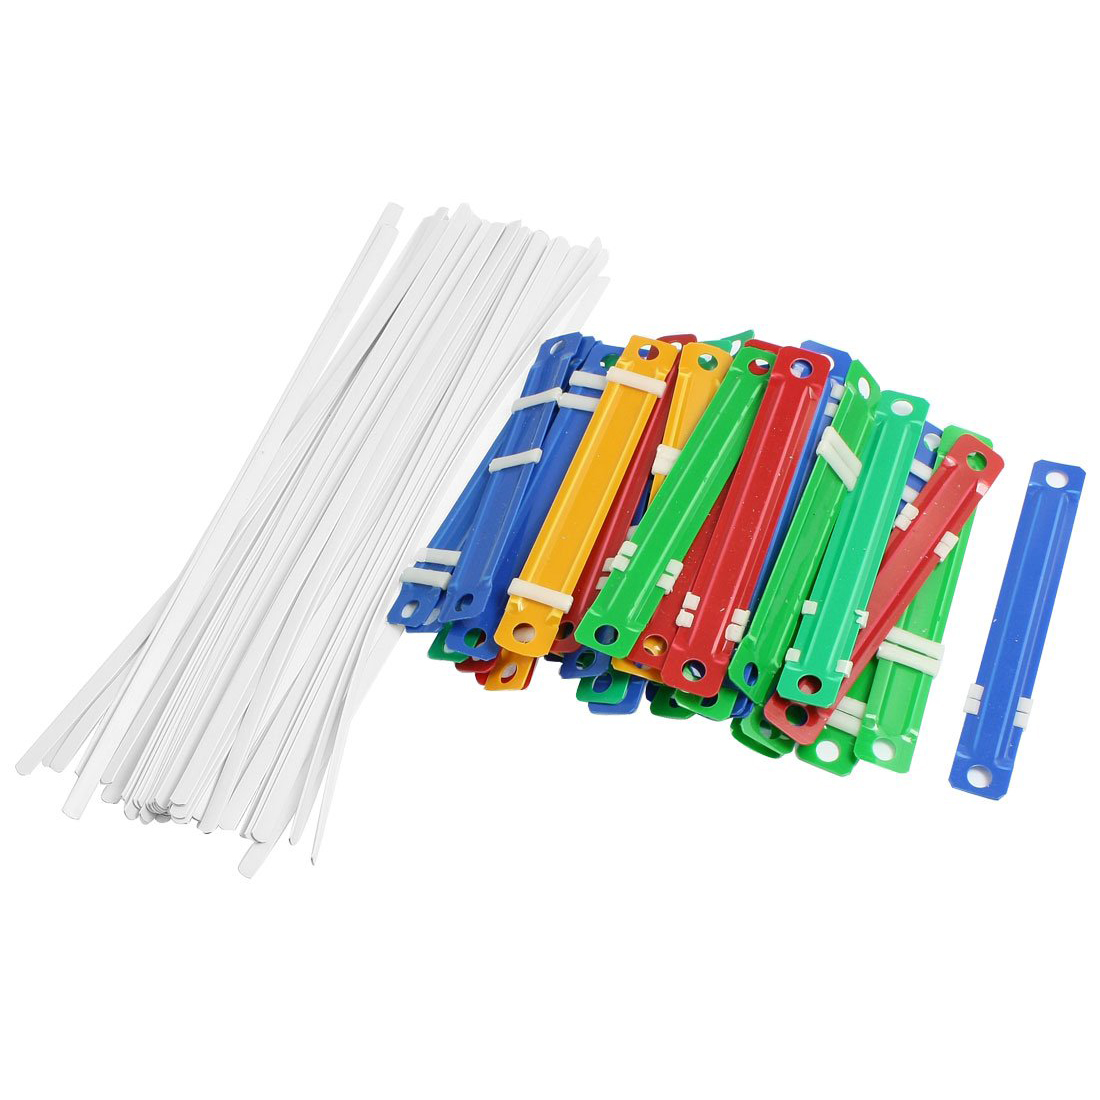 50 Pcs Office School Colorful Plastic Binding Two Piece